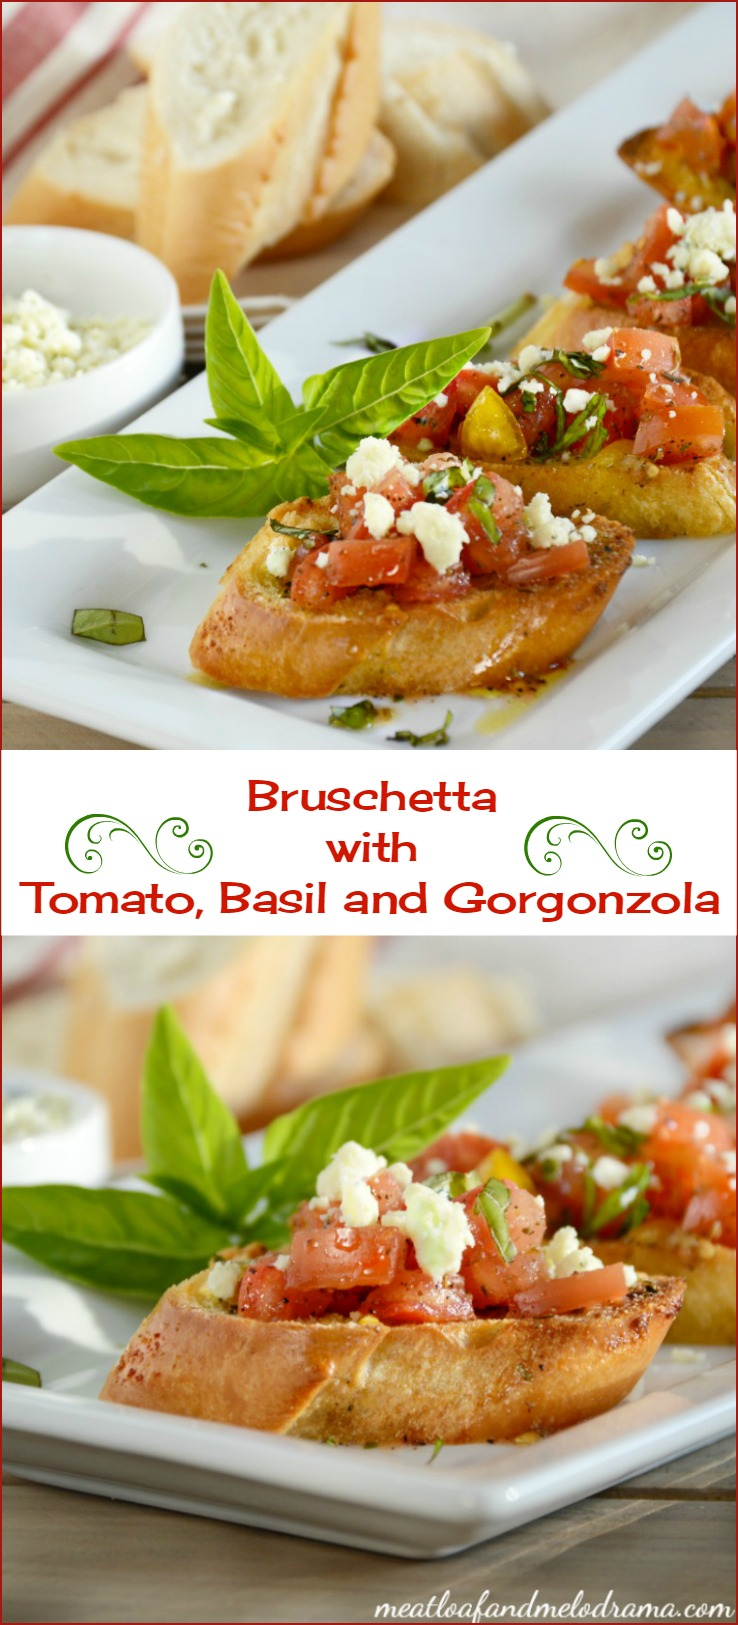 Bruschetta with Tomato, Basil and Gorgonzola - Meatloaf and Melodrama